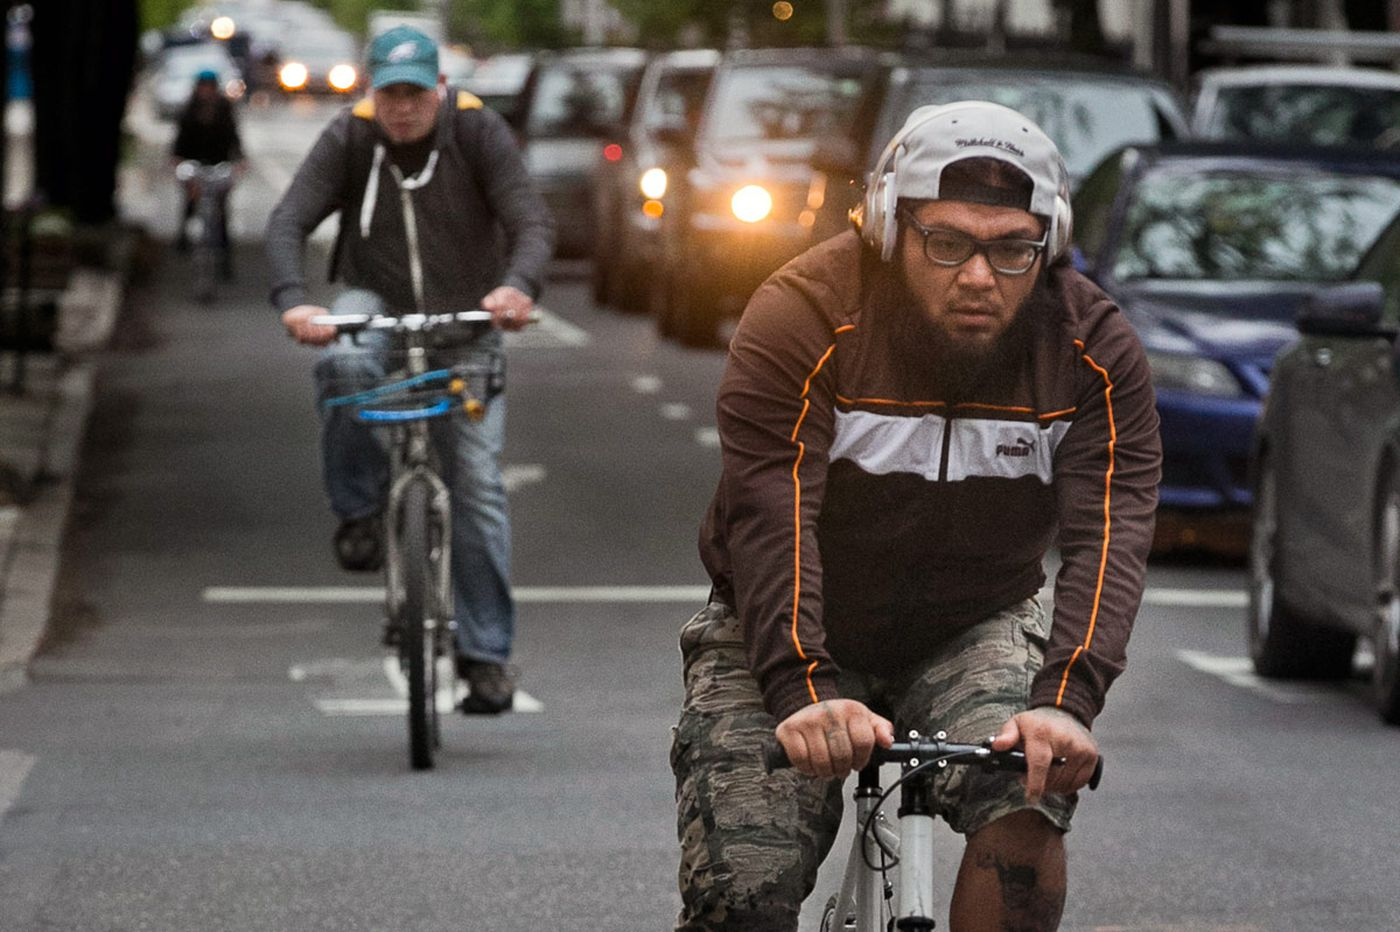 409a7eaa80c Philly biking is on the decline